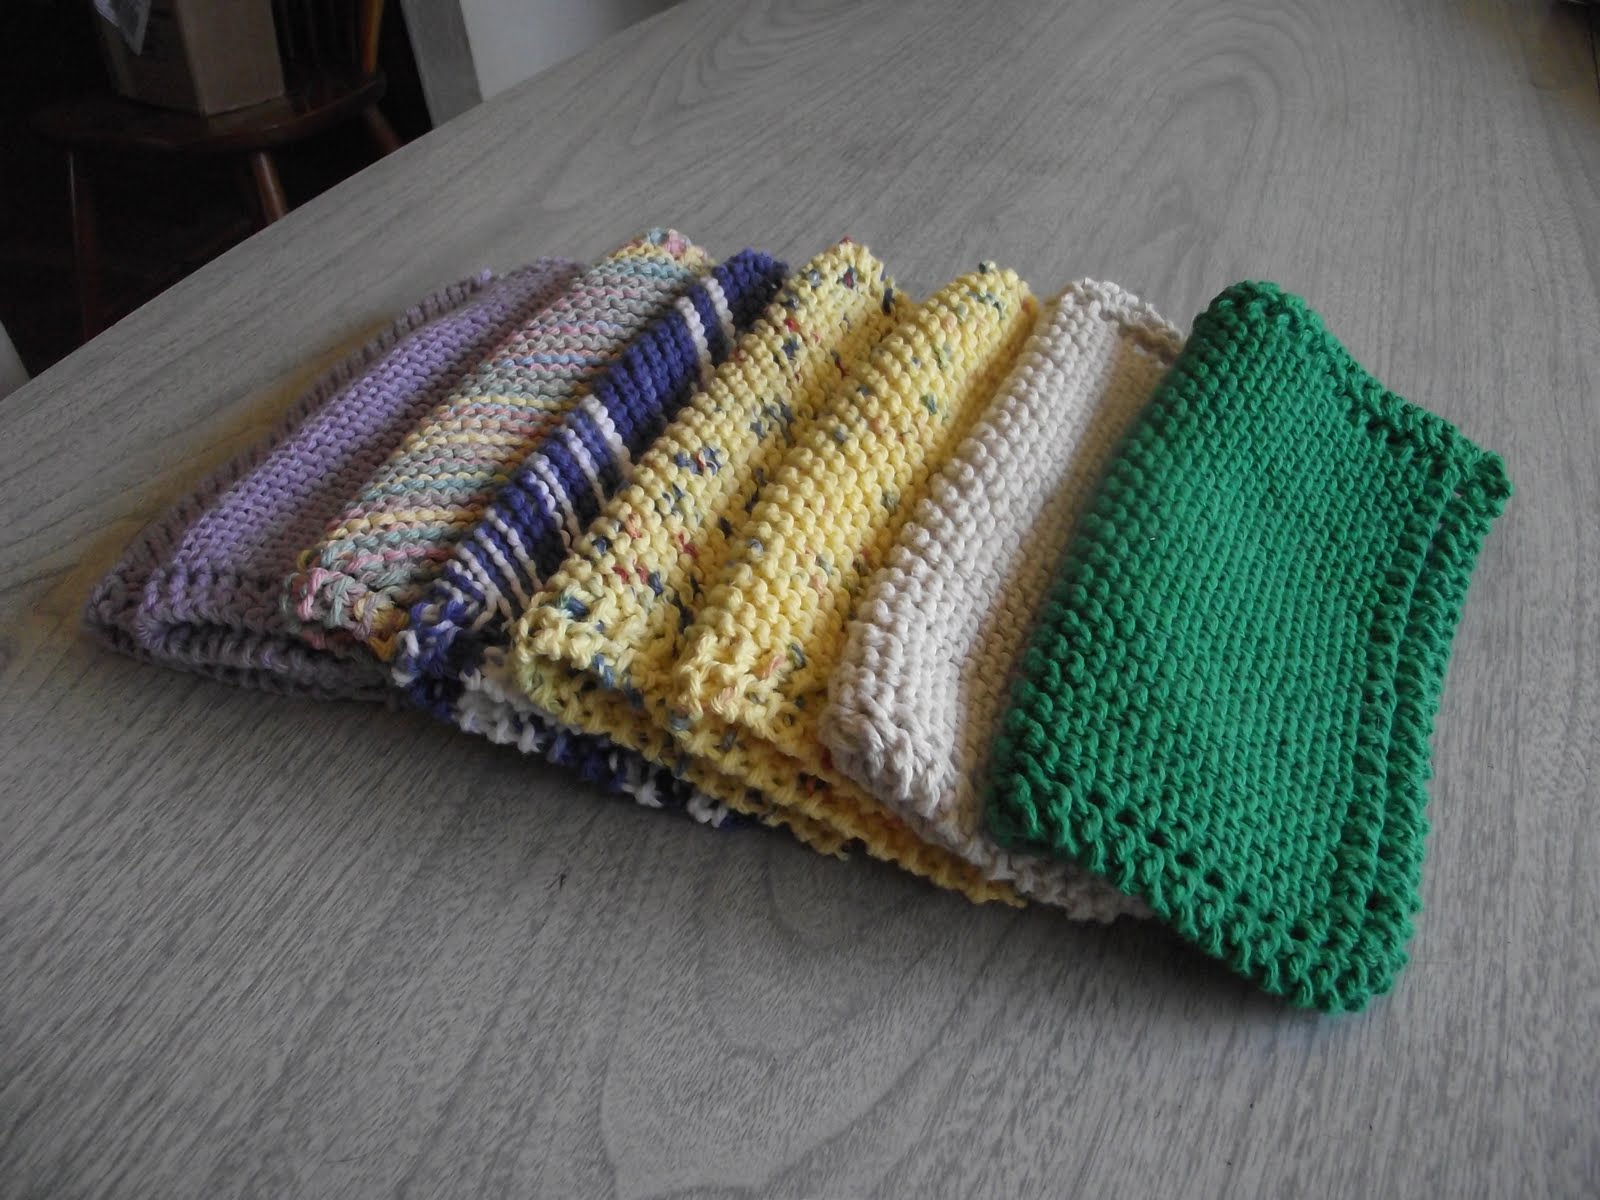 Knitting Dishcloths Easy : Knitted dishcloths patterns « browse